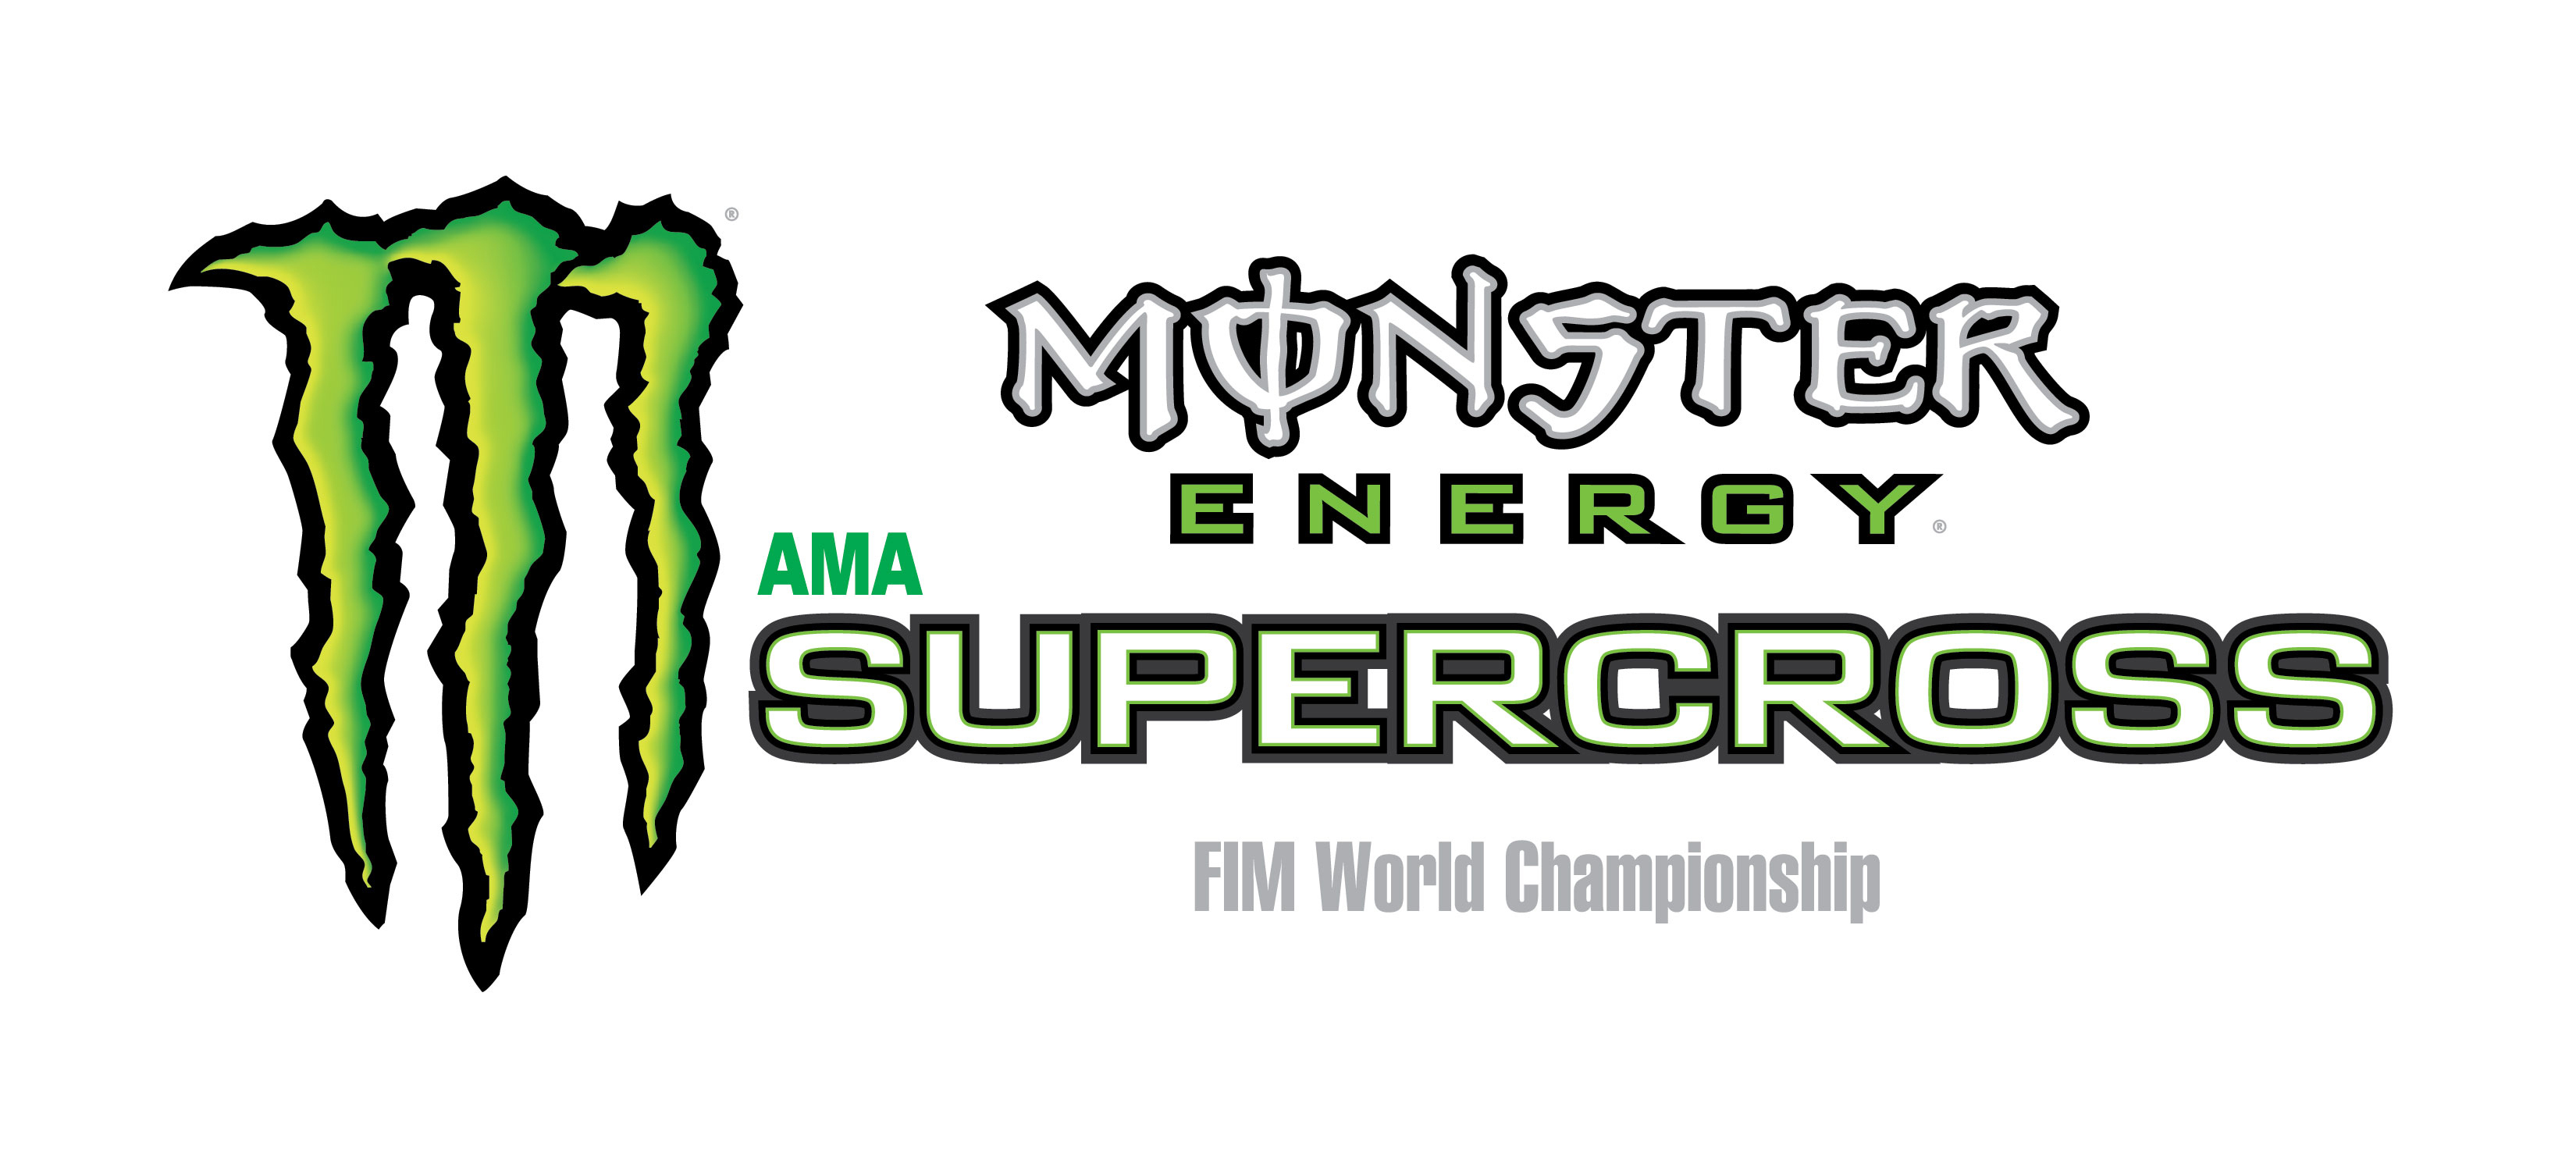 Ama Supercross Logo PNG - 98751